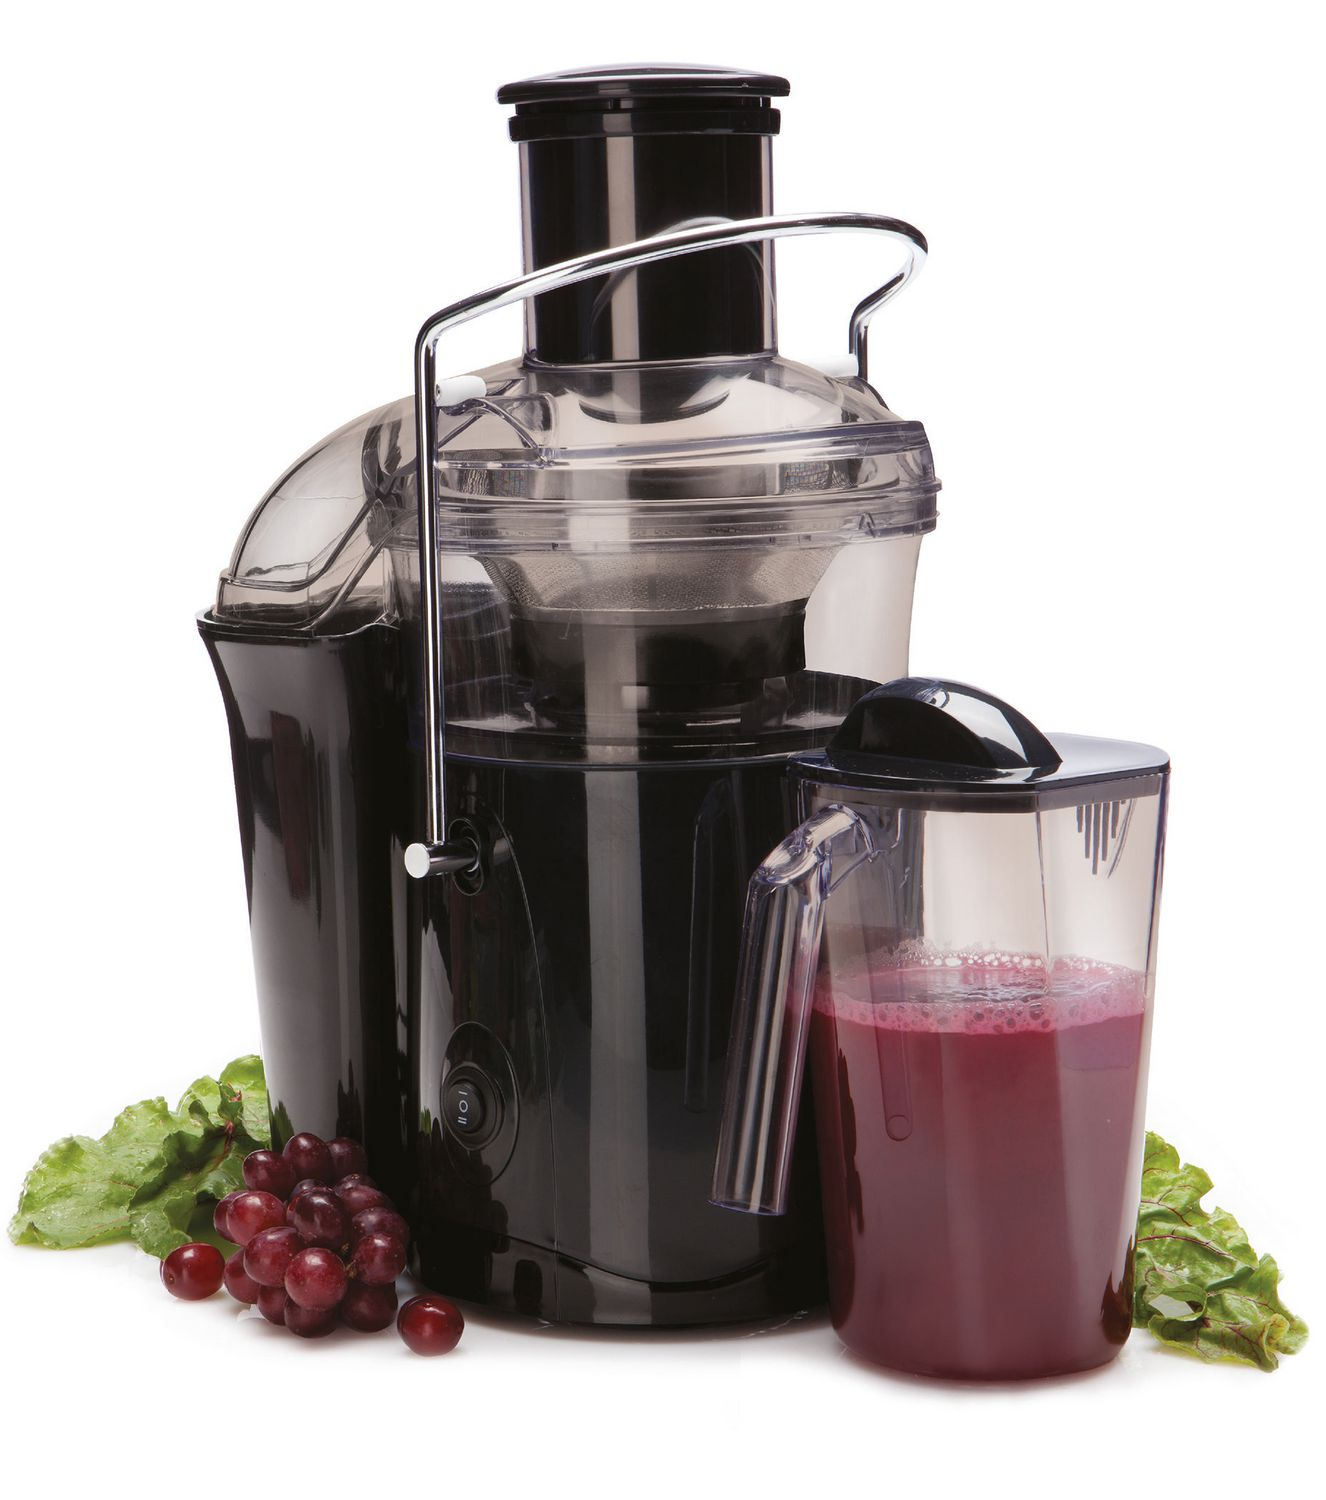 Black and clear plastic Jack LaLanne juice extractor juicer with purple-red juice in container and lettuce and red grapes at the base of the machine - best inexpensive juicer